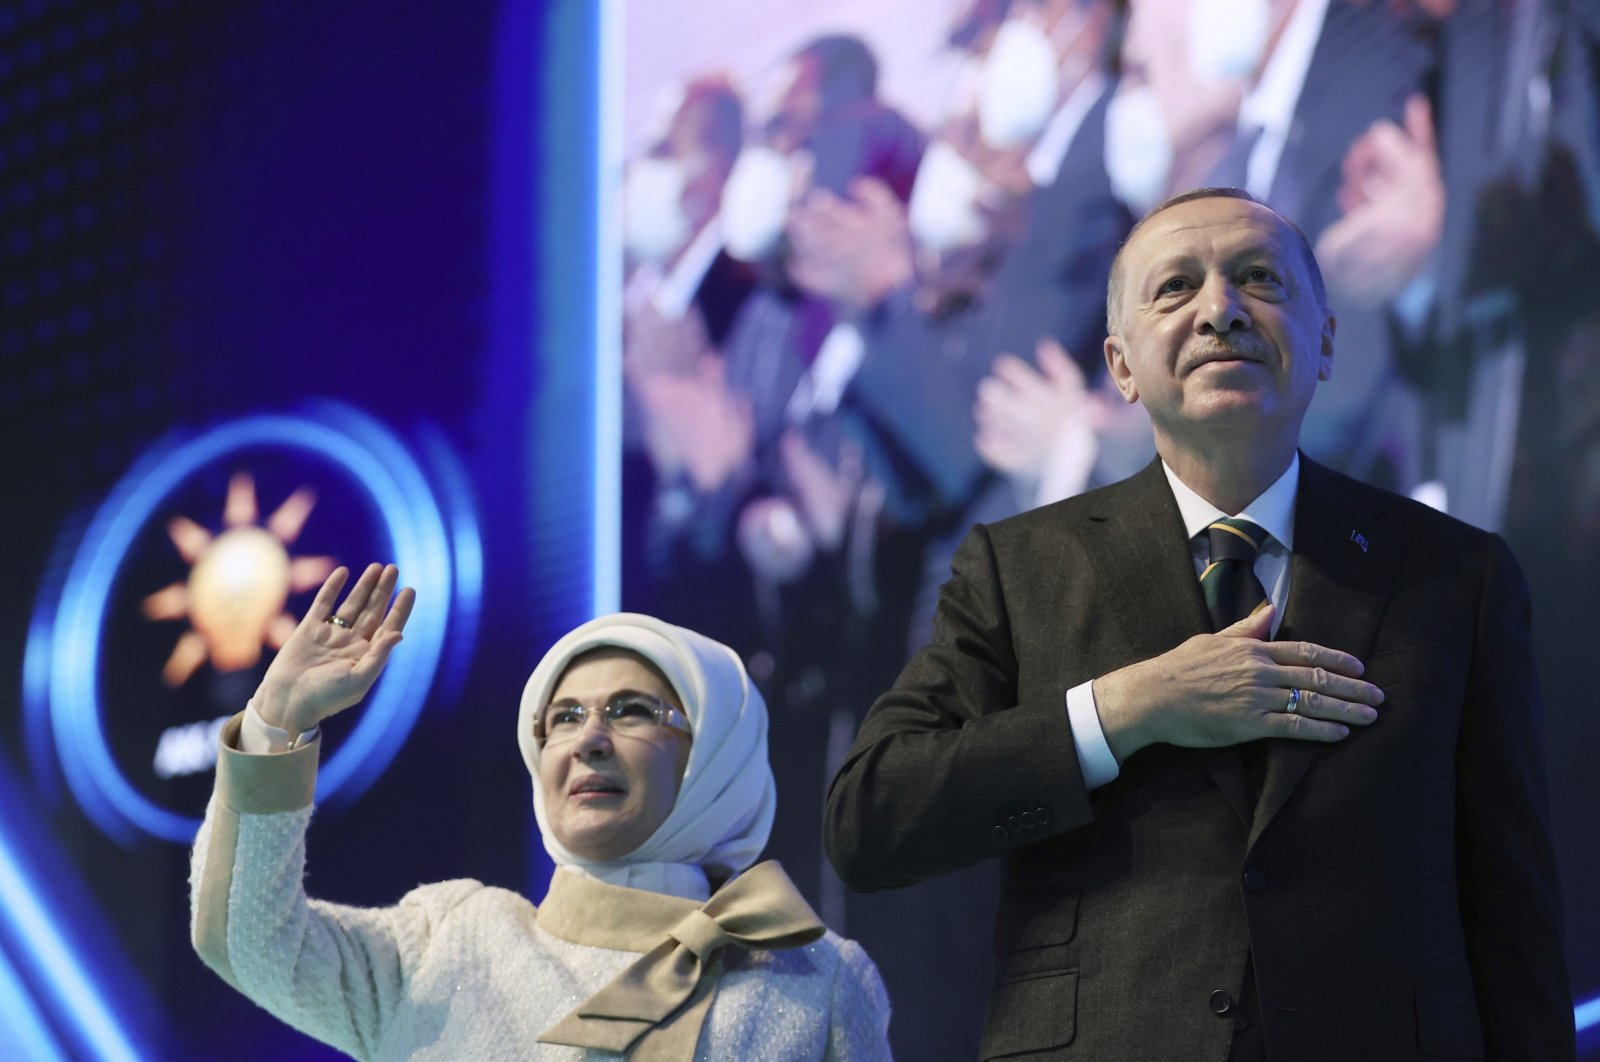 First lady Emine Erdoğan (L) and President Recep Tayyip Erdoğan acknowledge his supporters during the Justice and Development Party's (AK Party) congress, Ankara, Turkey, March 24, 2021. (AP Photo)